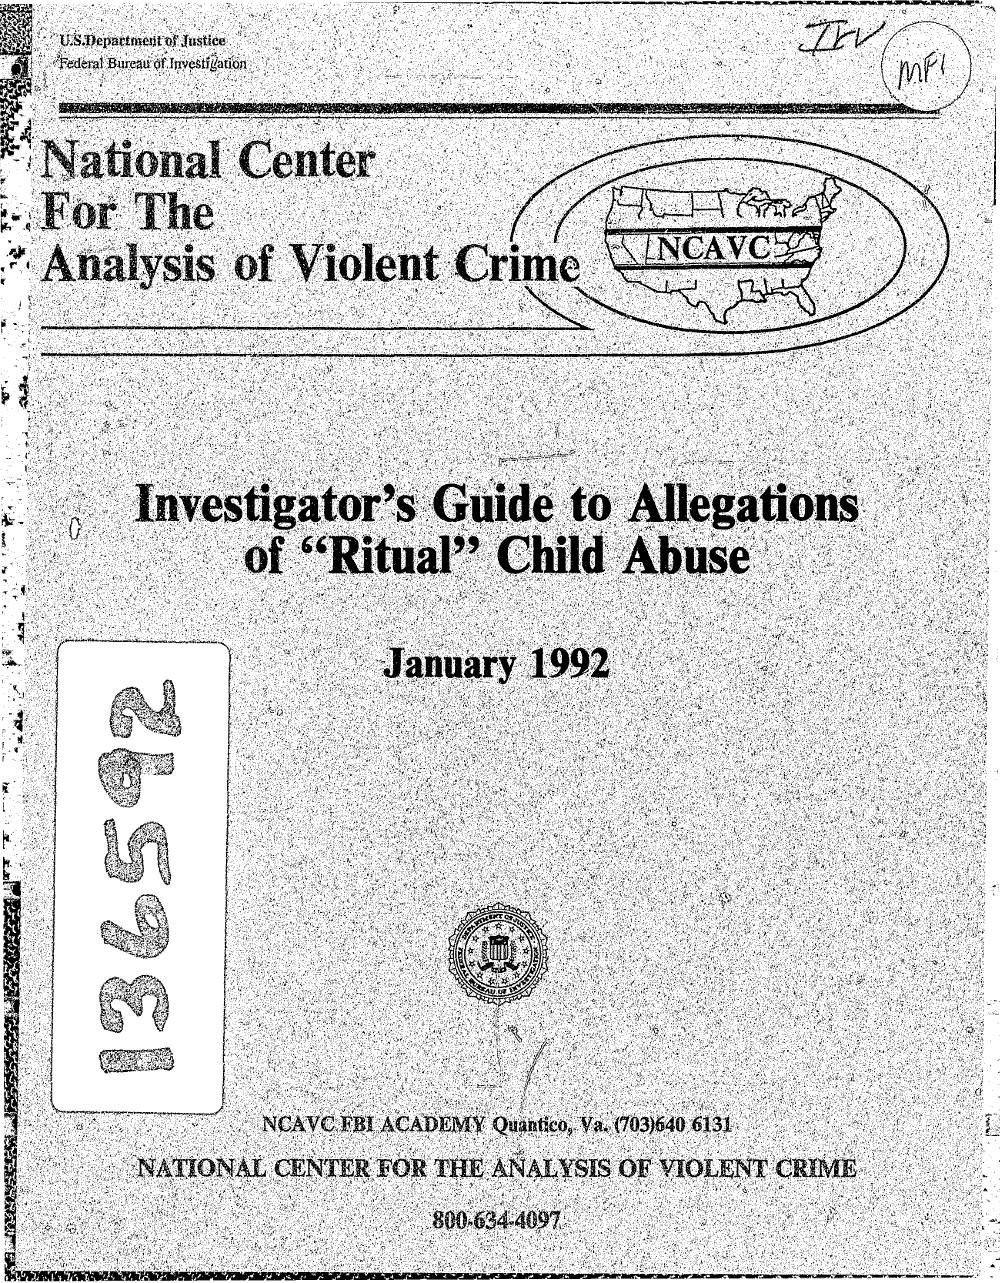 Investigator's Guide to Allegations of Ritual Childhood Abuse, Lanning 92 -- Page 1